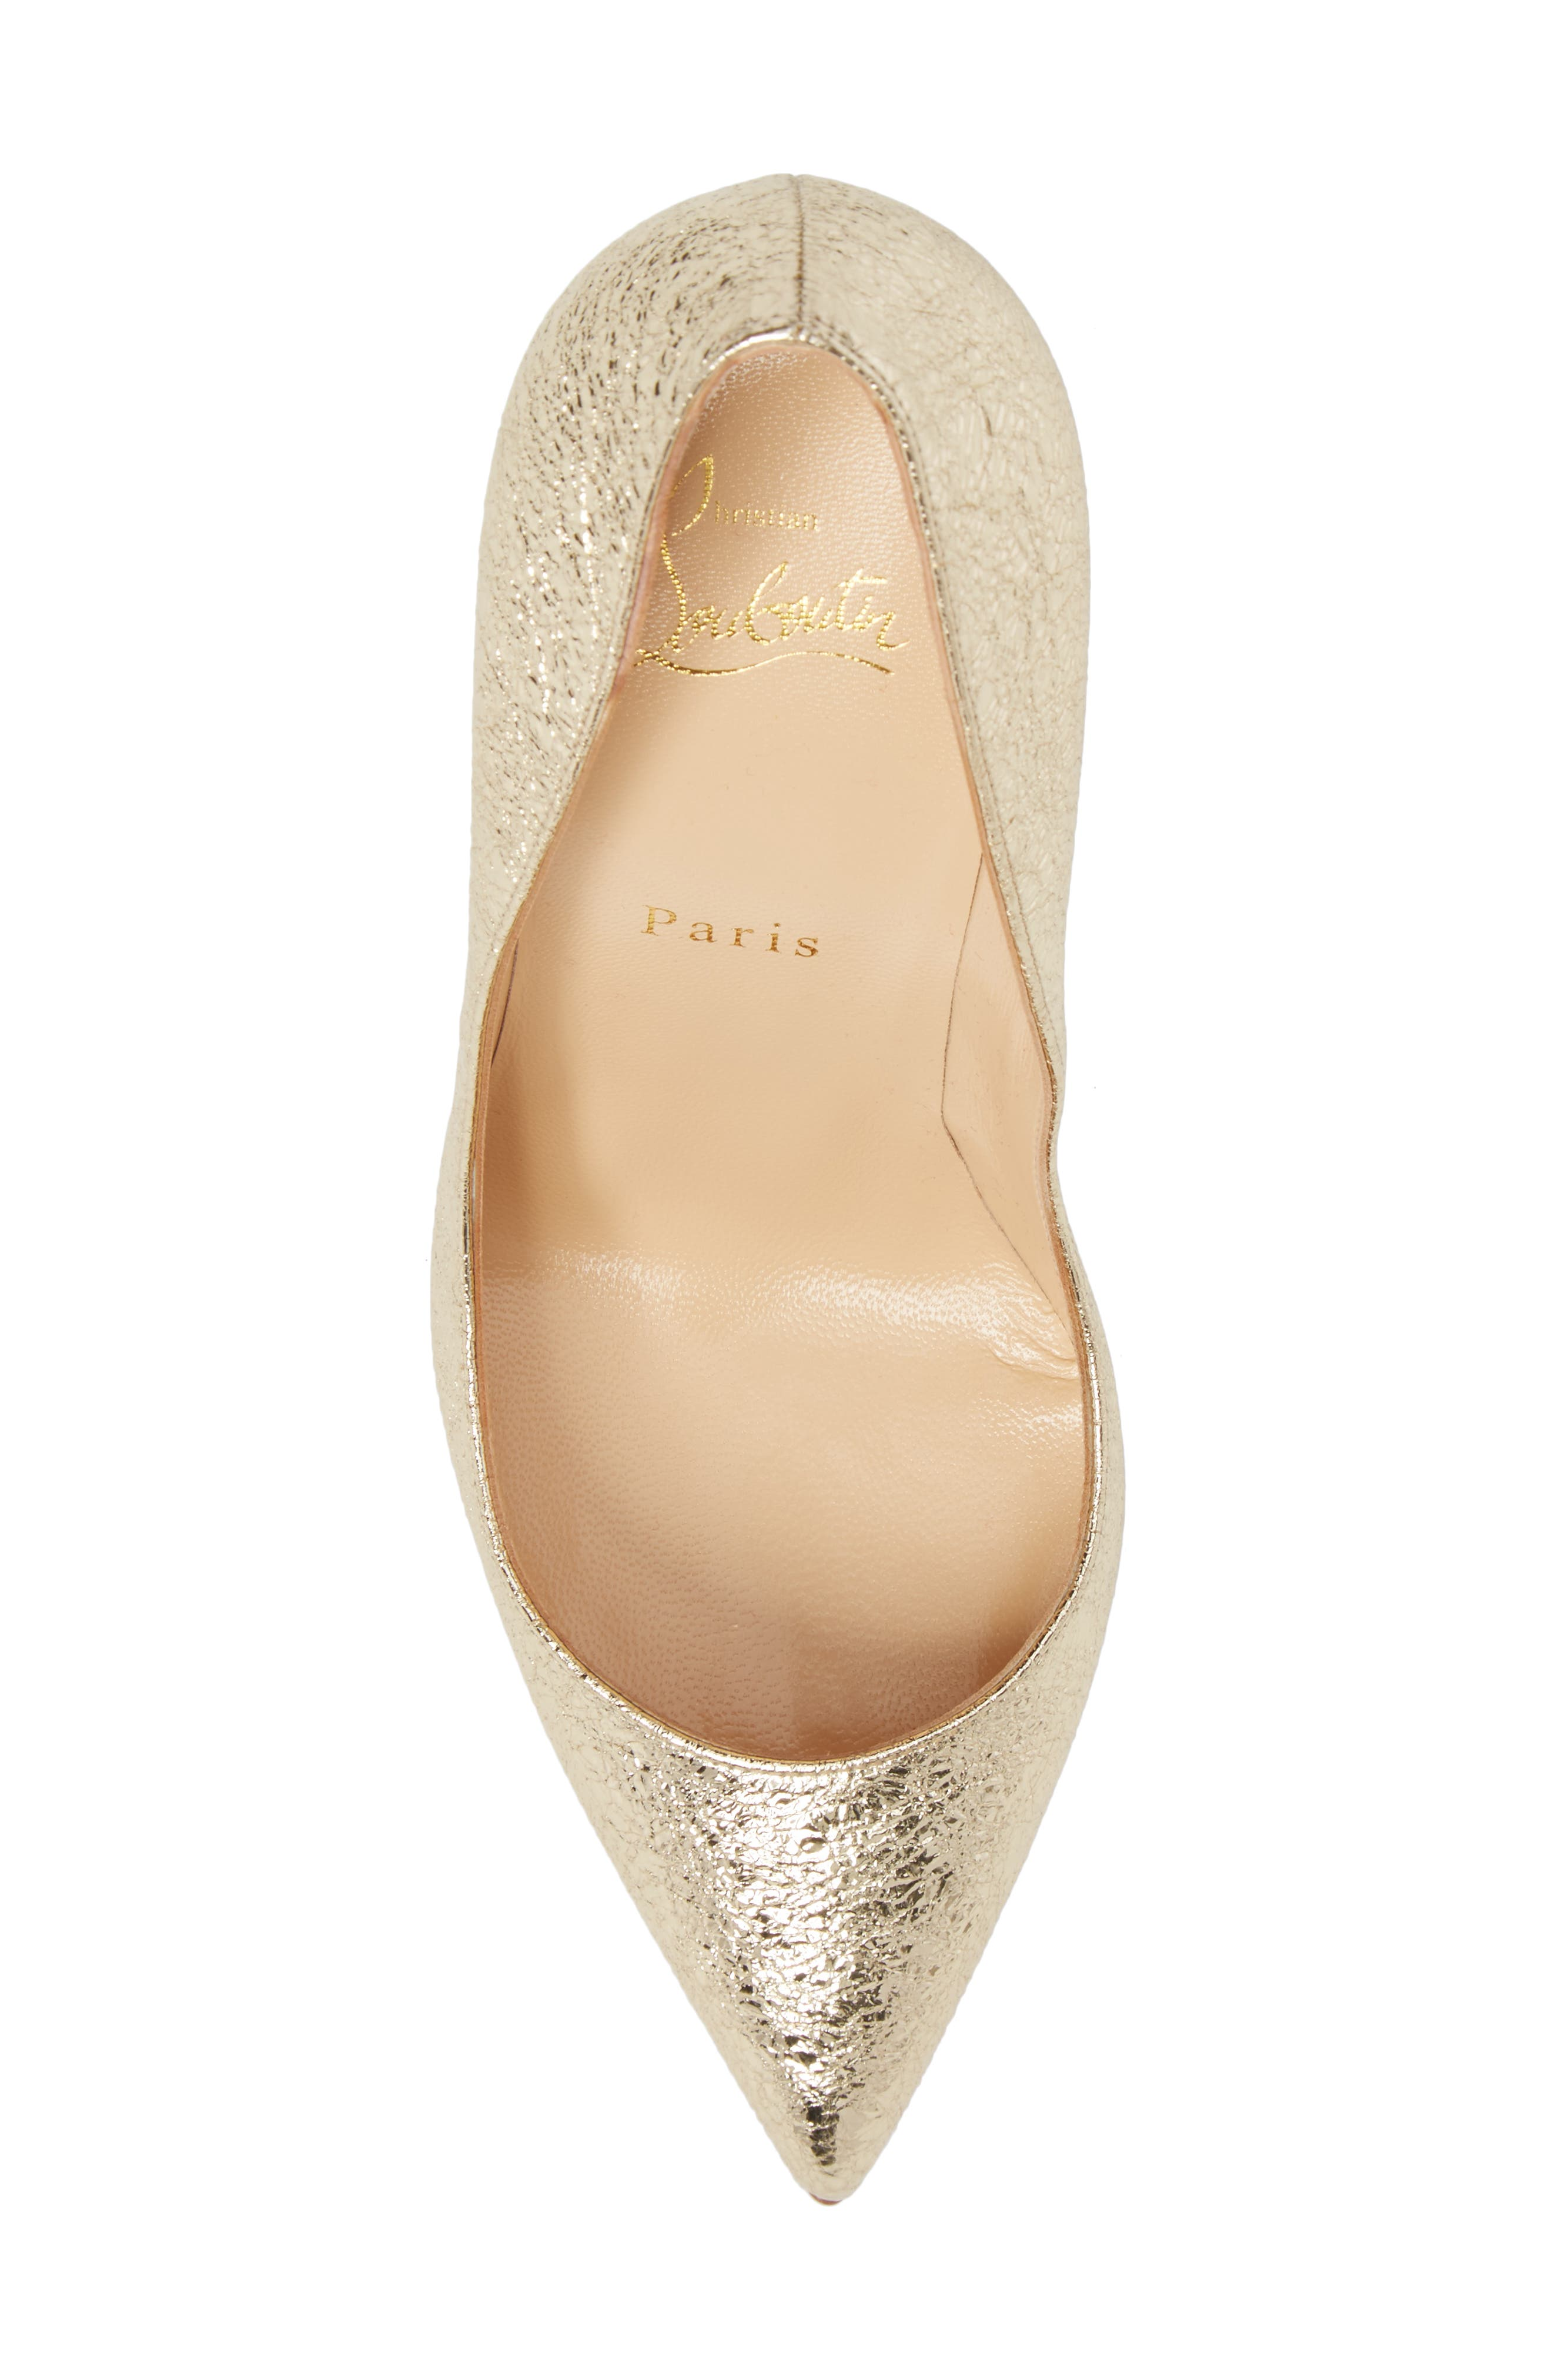 Pigalle Follies Pointy Toe Pump,                             Alternate thumbnail 5, color,                             040